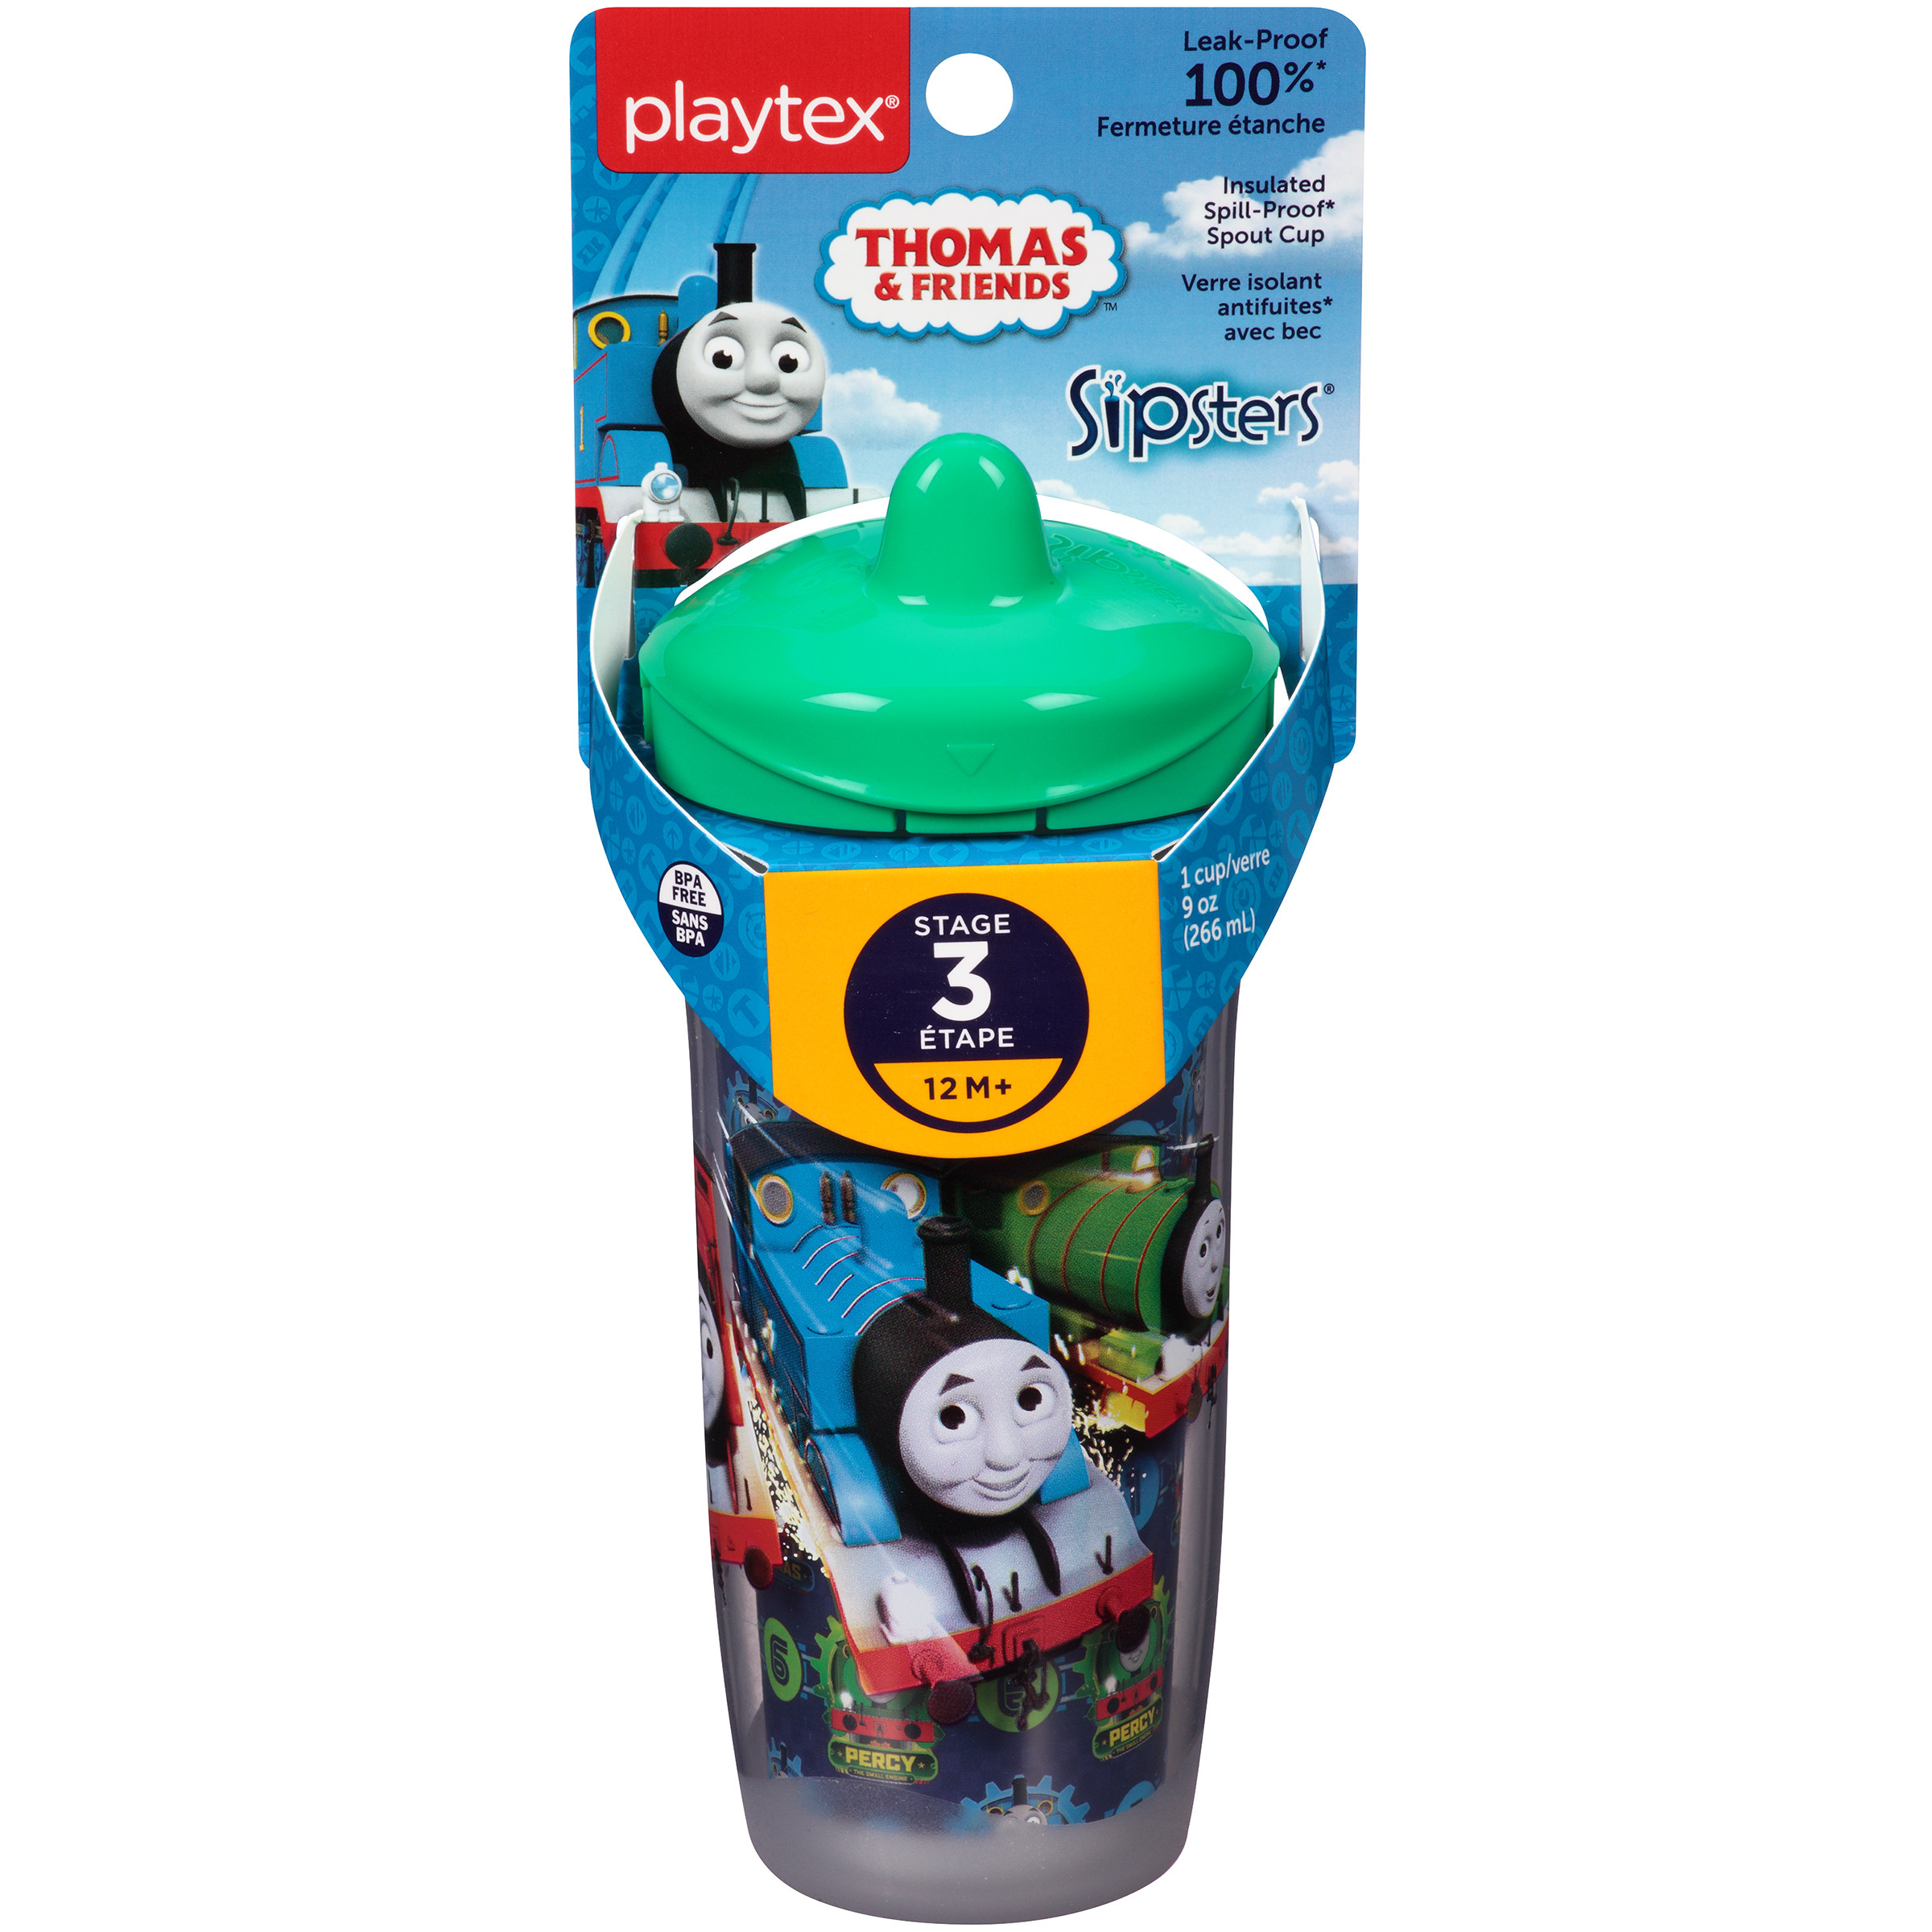 Playtex Sipsters Thomas & Friends Stage 3 Insulated Spout Sippy Cup 9oz 1-Pack Assorted Patterns